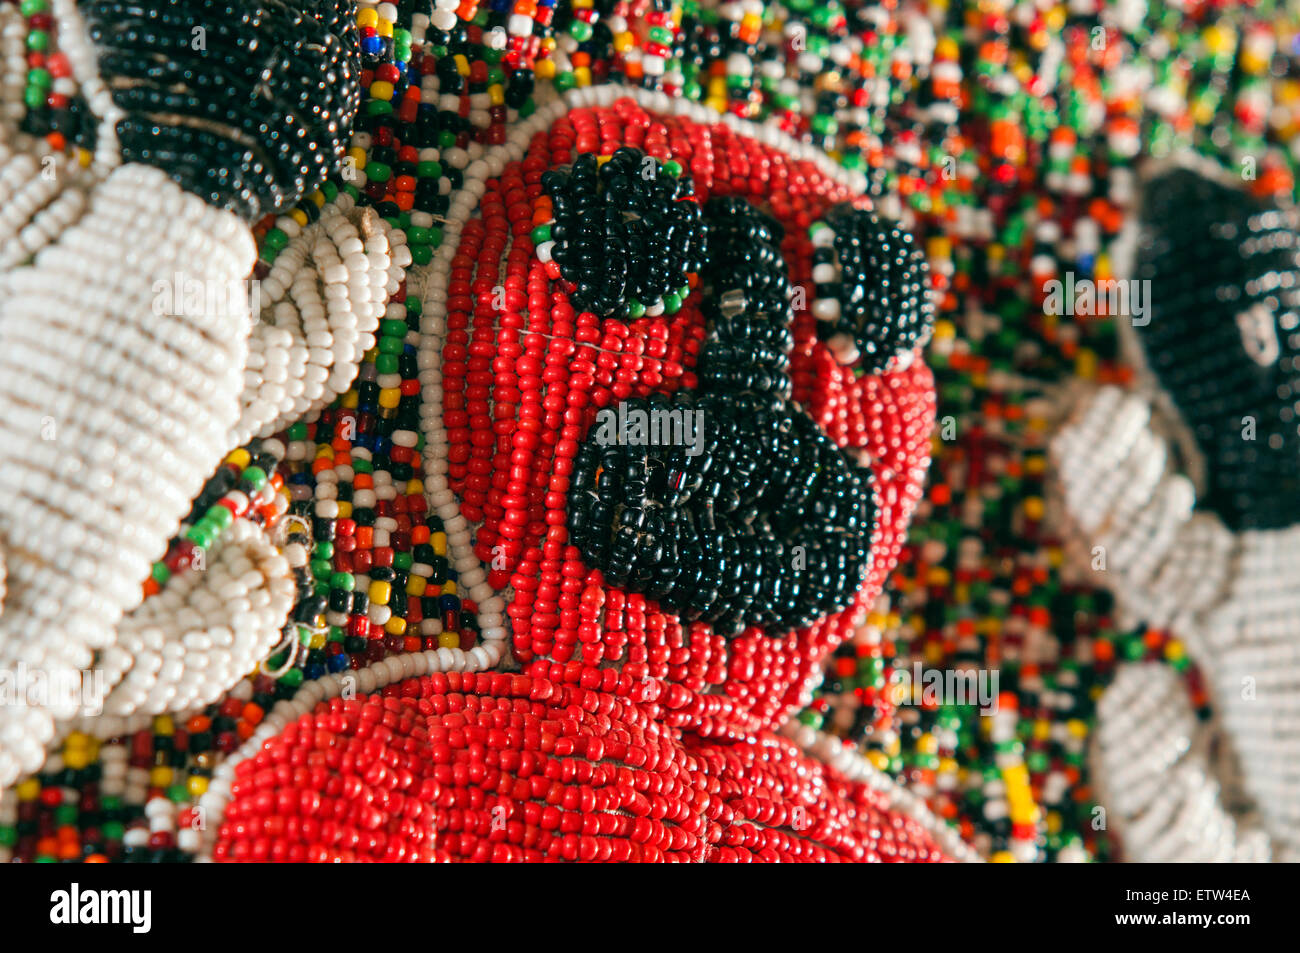 Yoruba tribe three dimensional beaded crocodile diviner's panel from Nigeria in studio setting - Stock Image